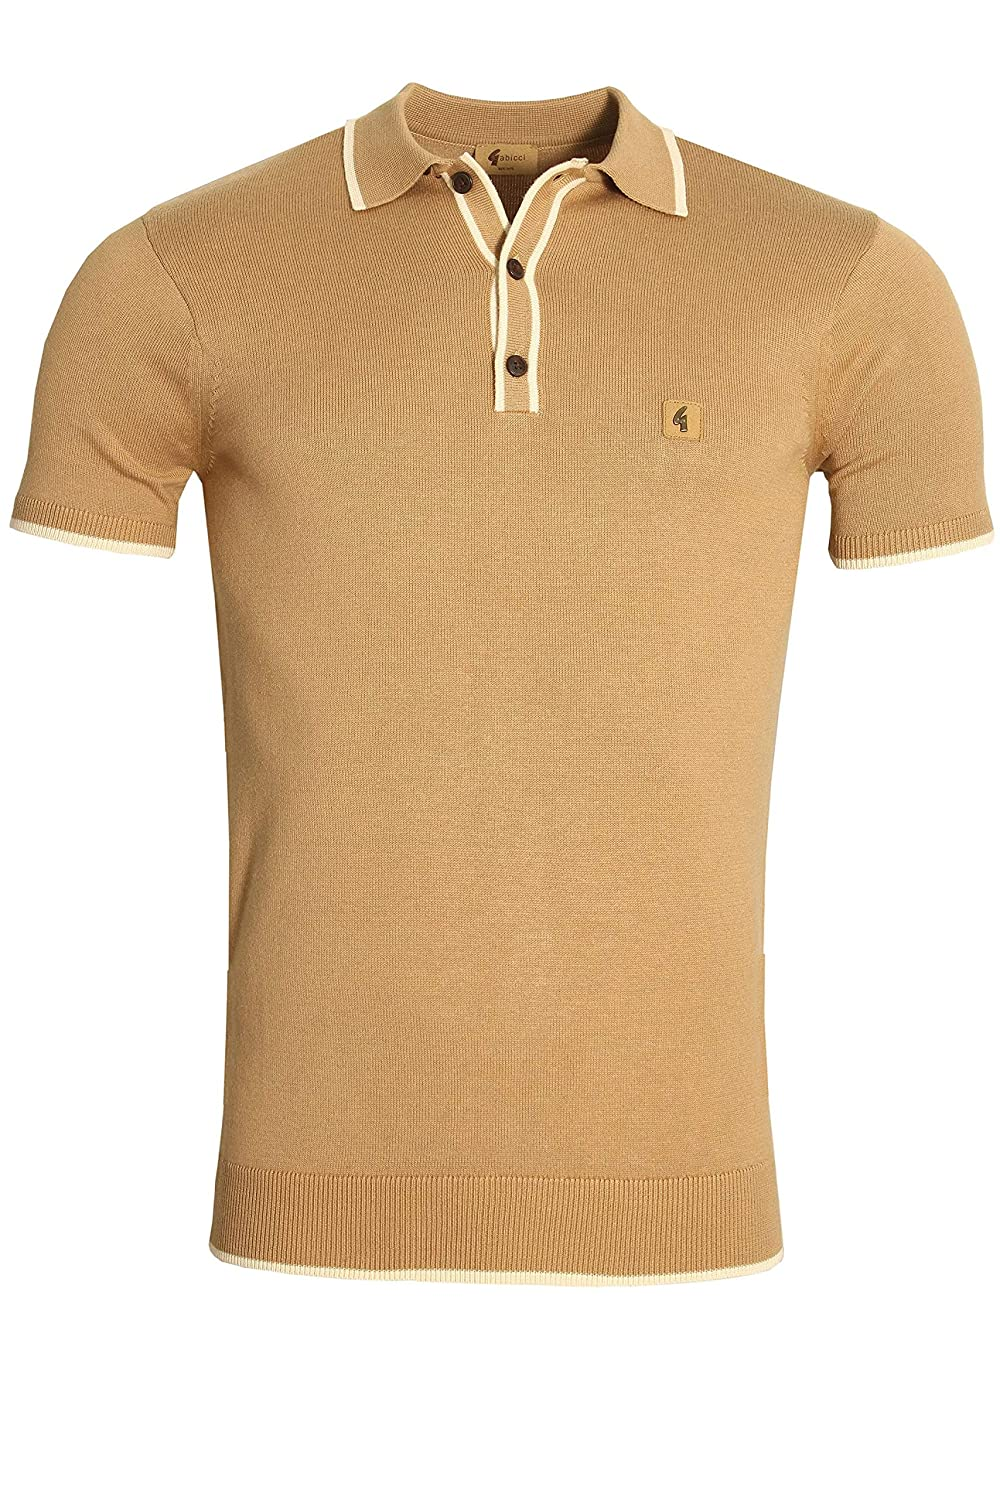 Gabicci Lineker Tip Collar Polo Shirt | Butter Scotch X-Large ...